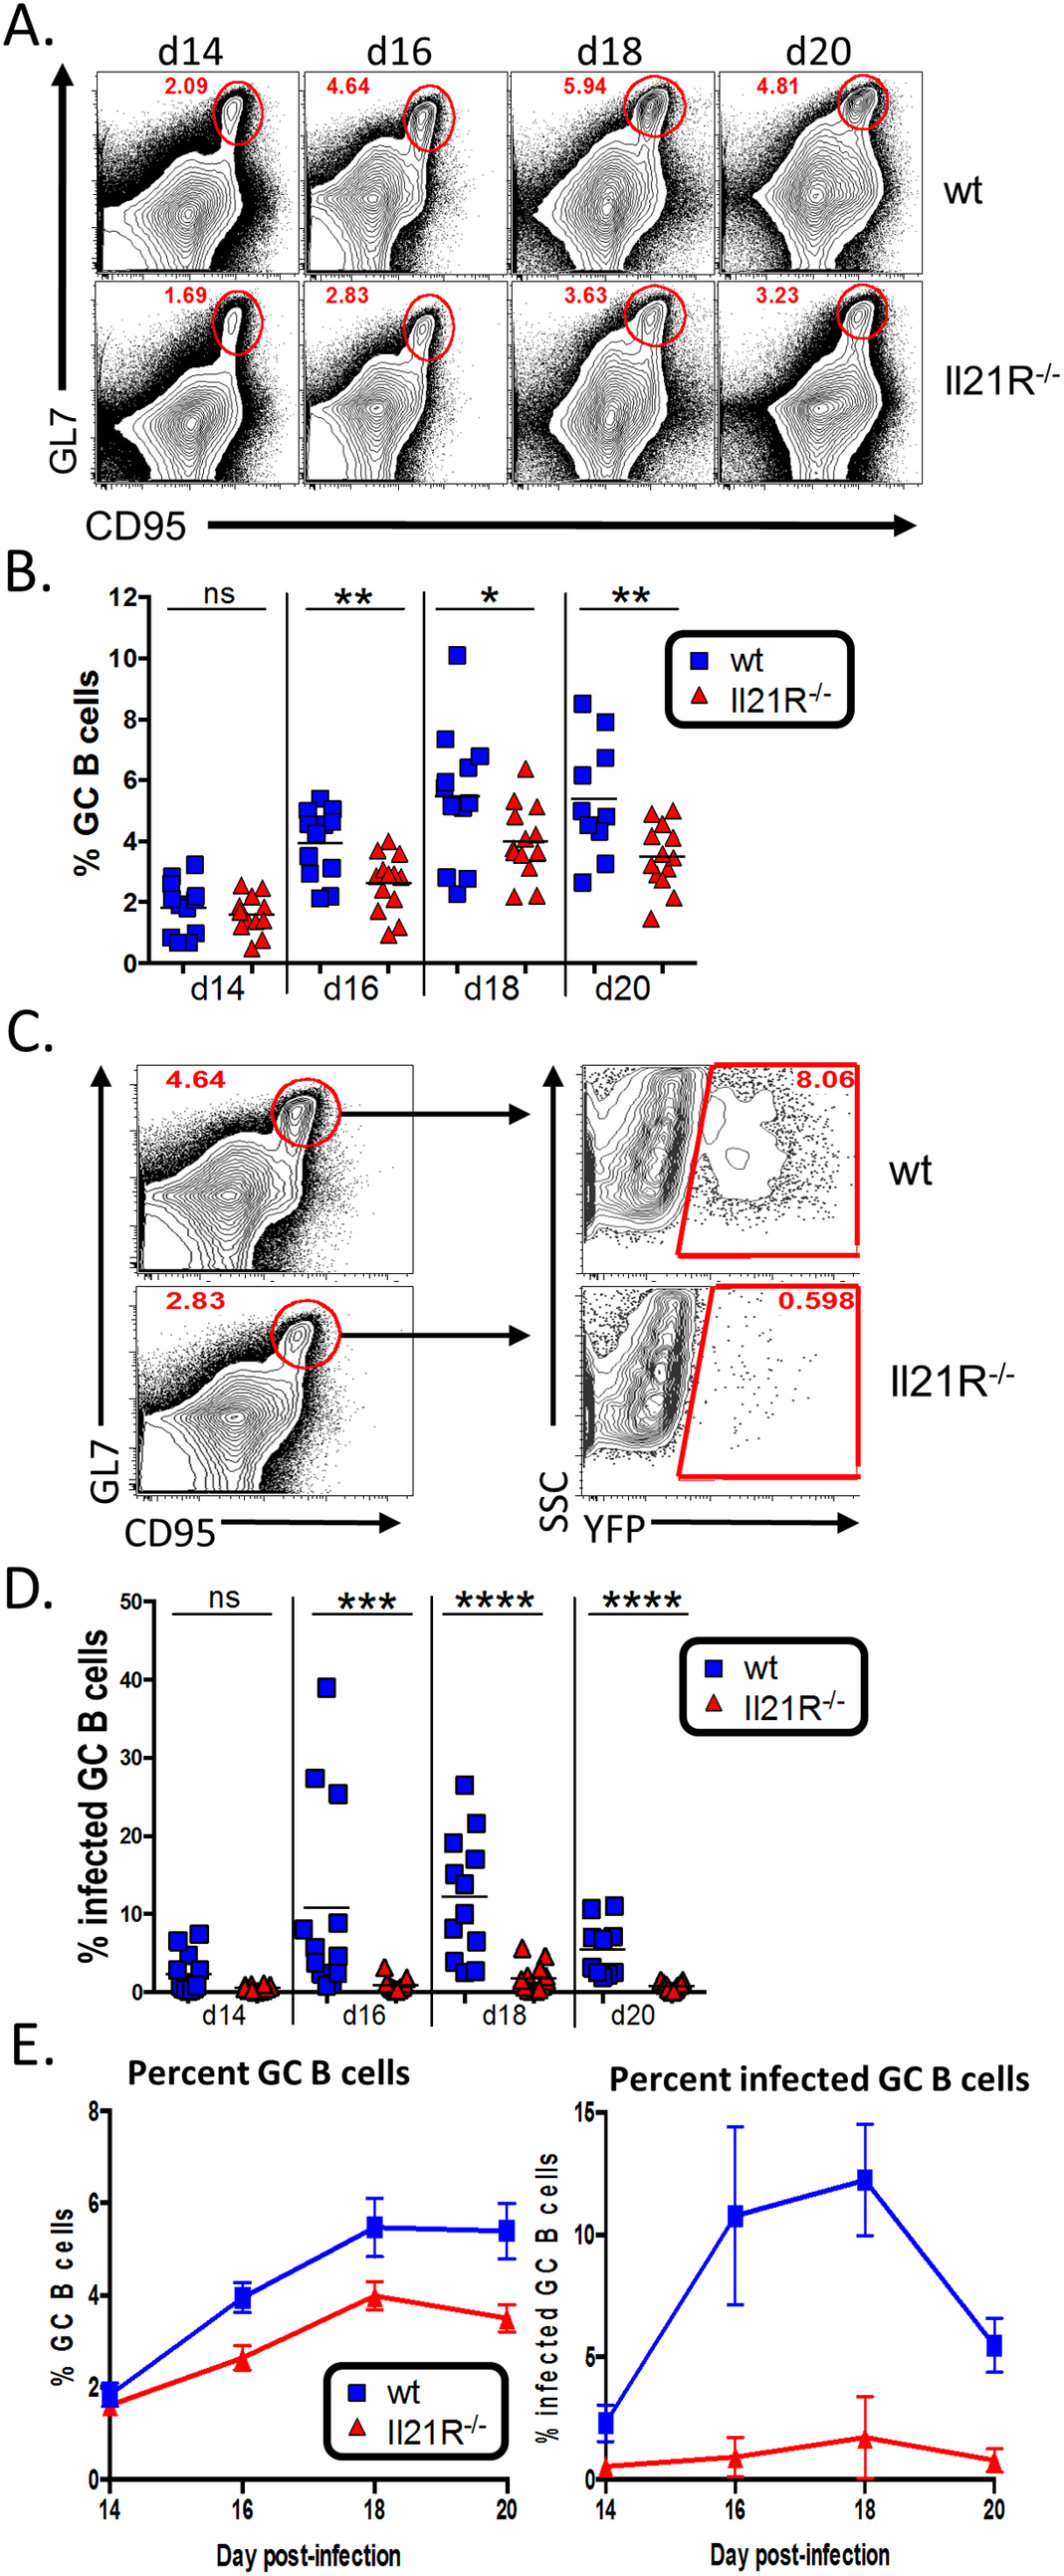 Reduced germinal center response in IL-21R<sup>-/-</sup> mice.